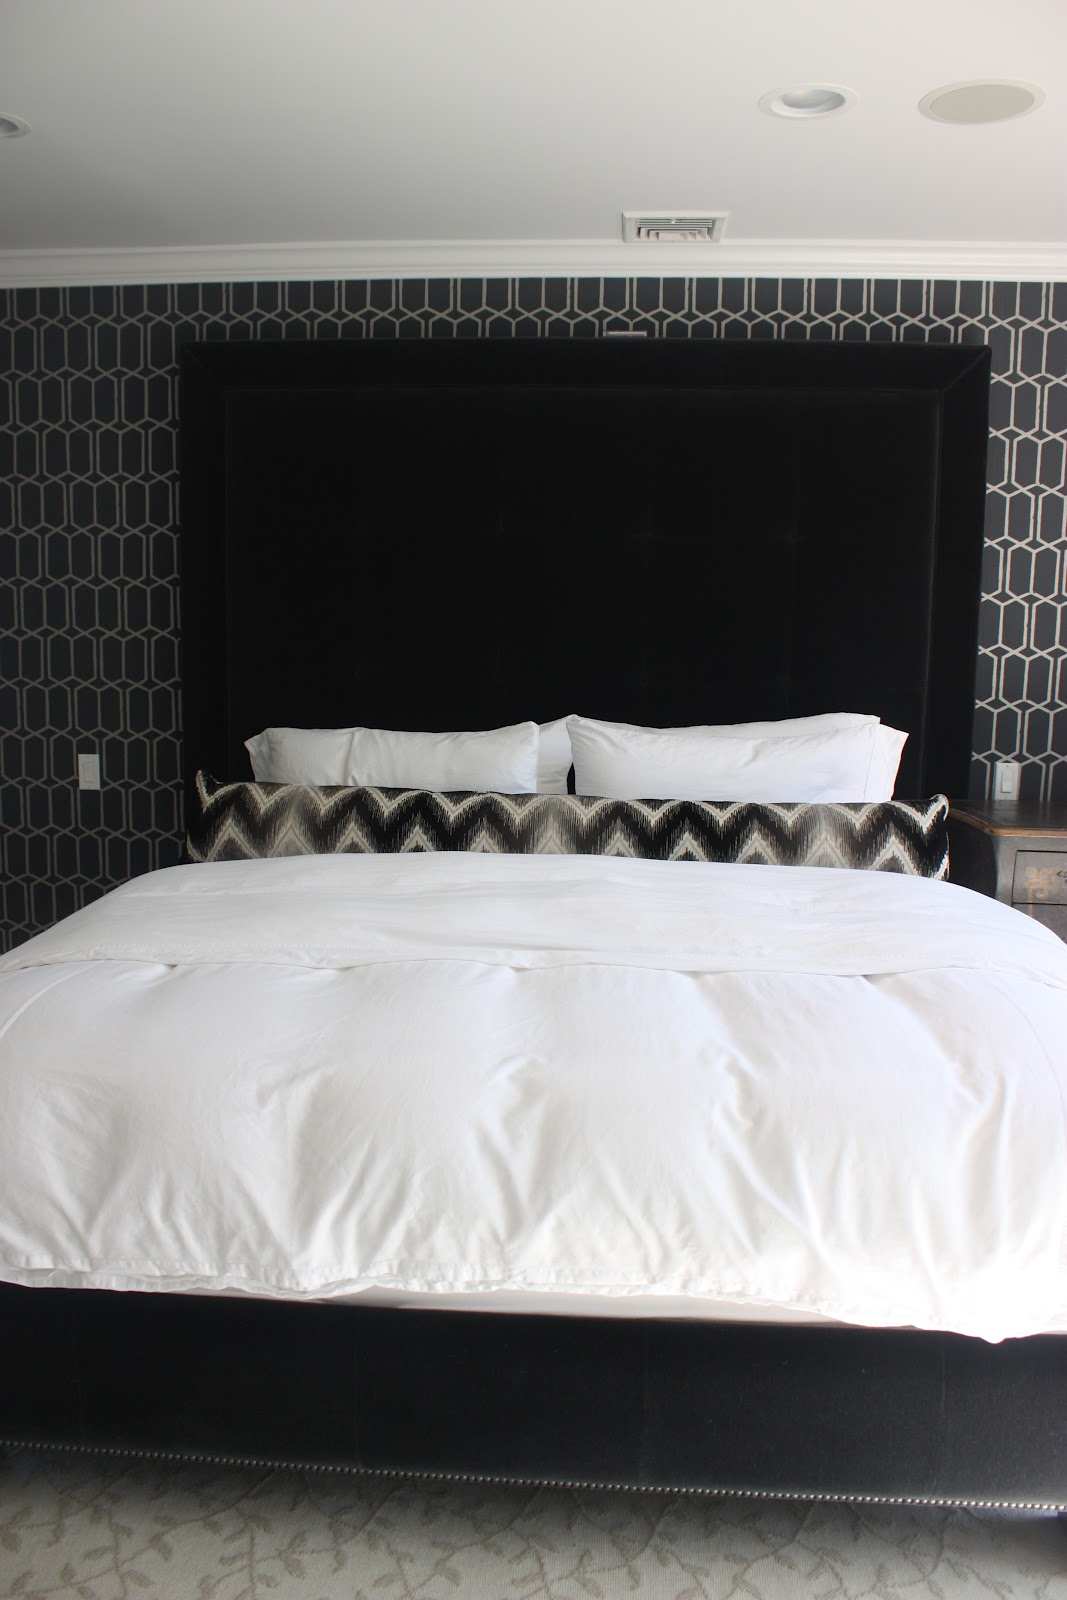 this is robert 39 s room at khloe 39 s house i love the masculine dark